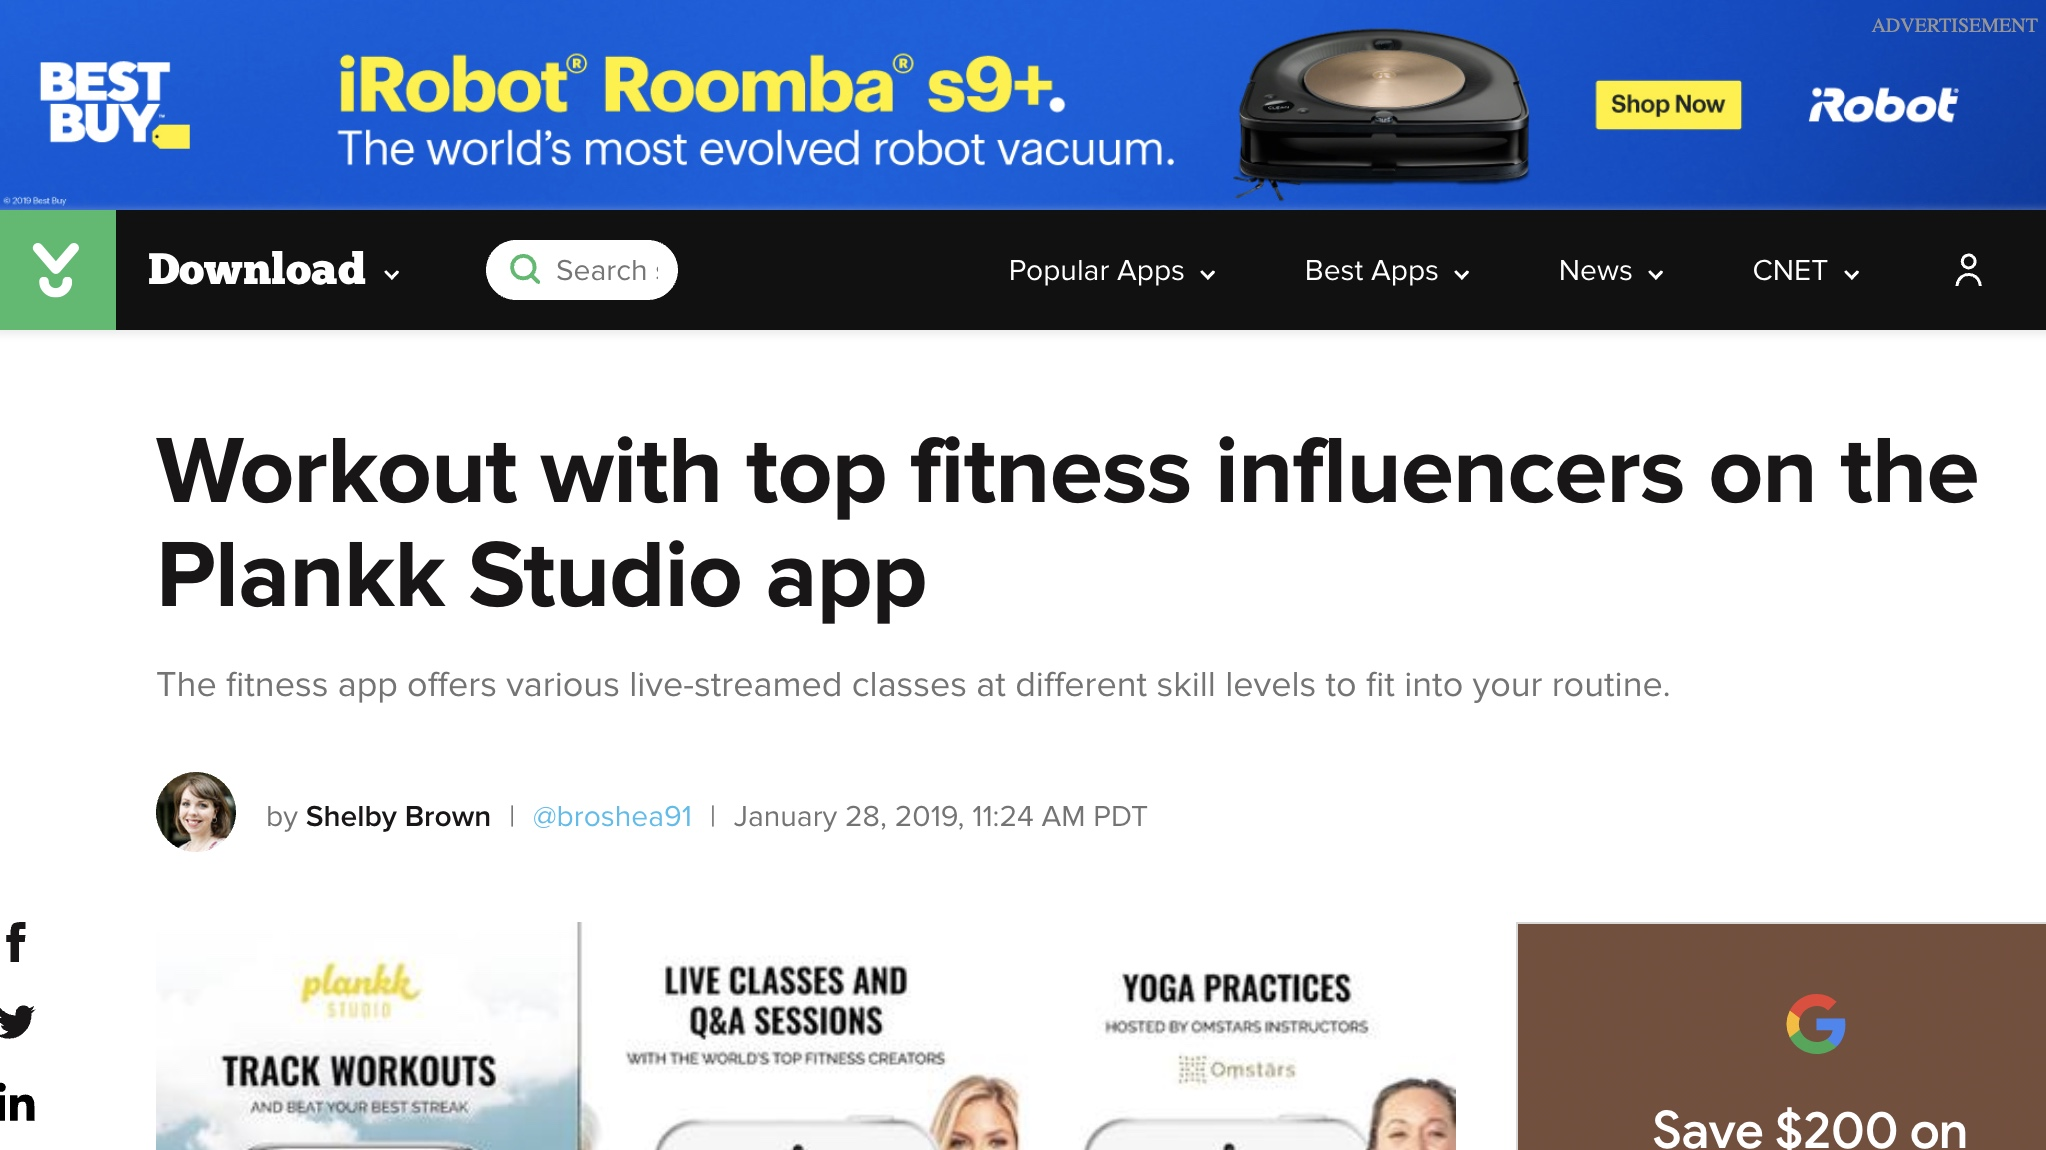 Cnet - Workout with top fitness influencers on the Plankk Studio app